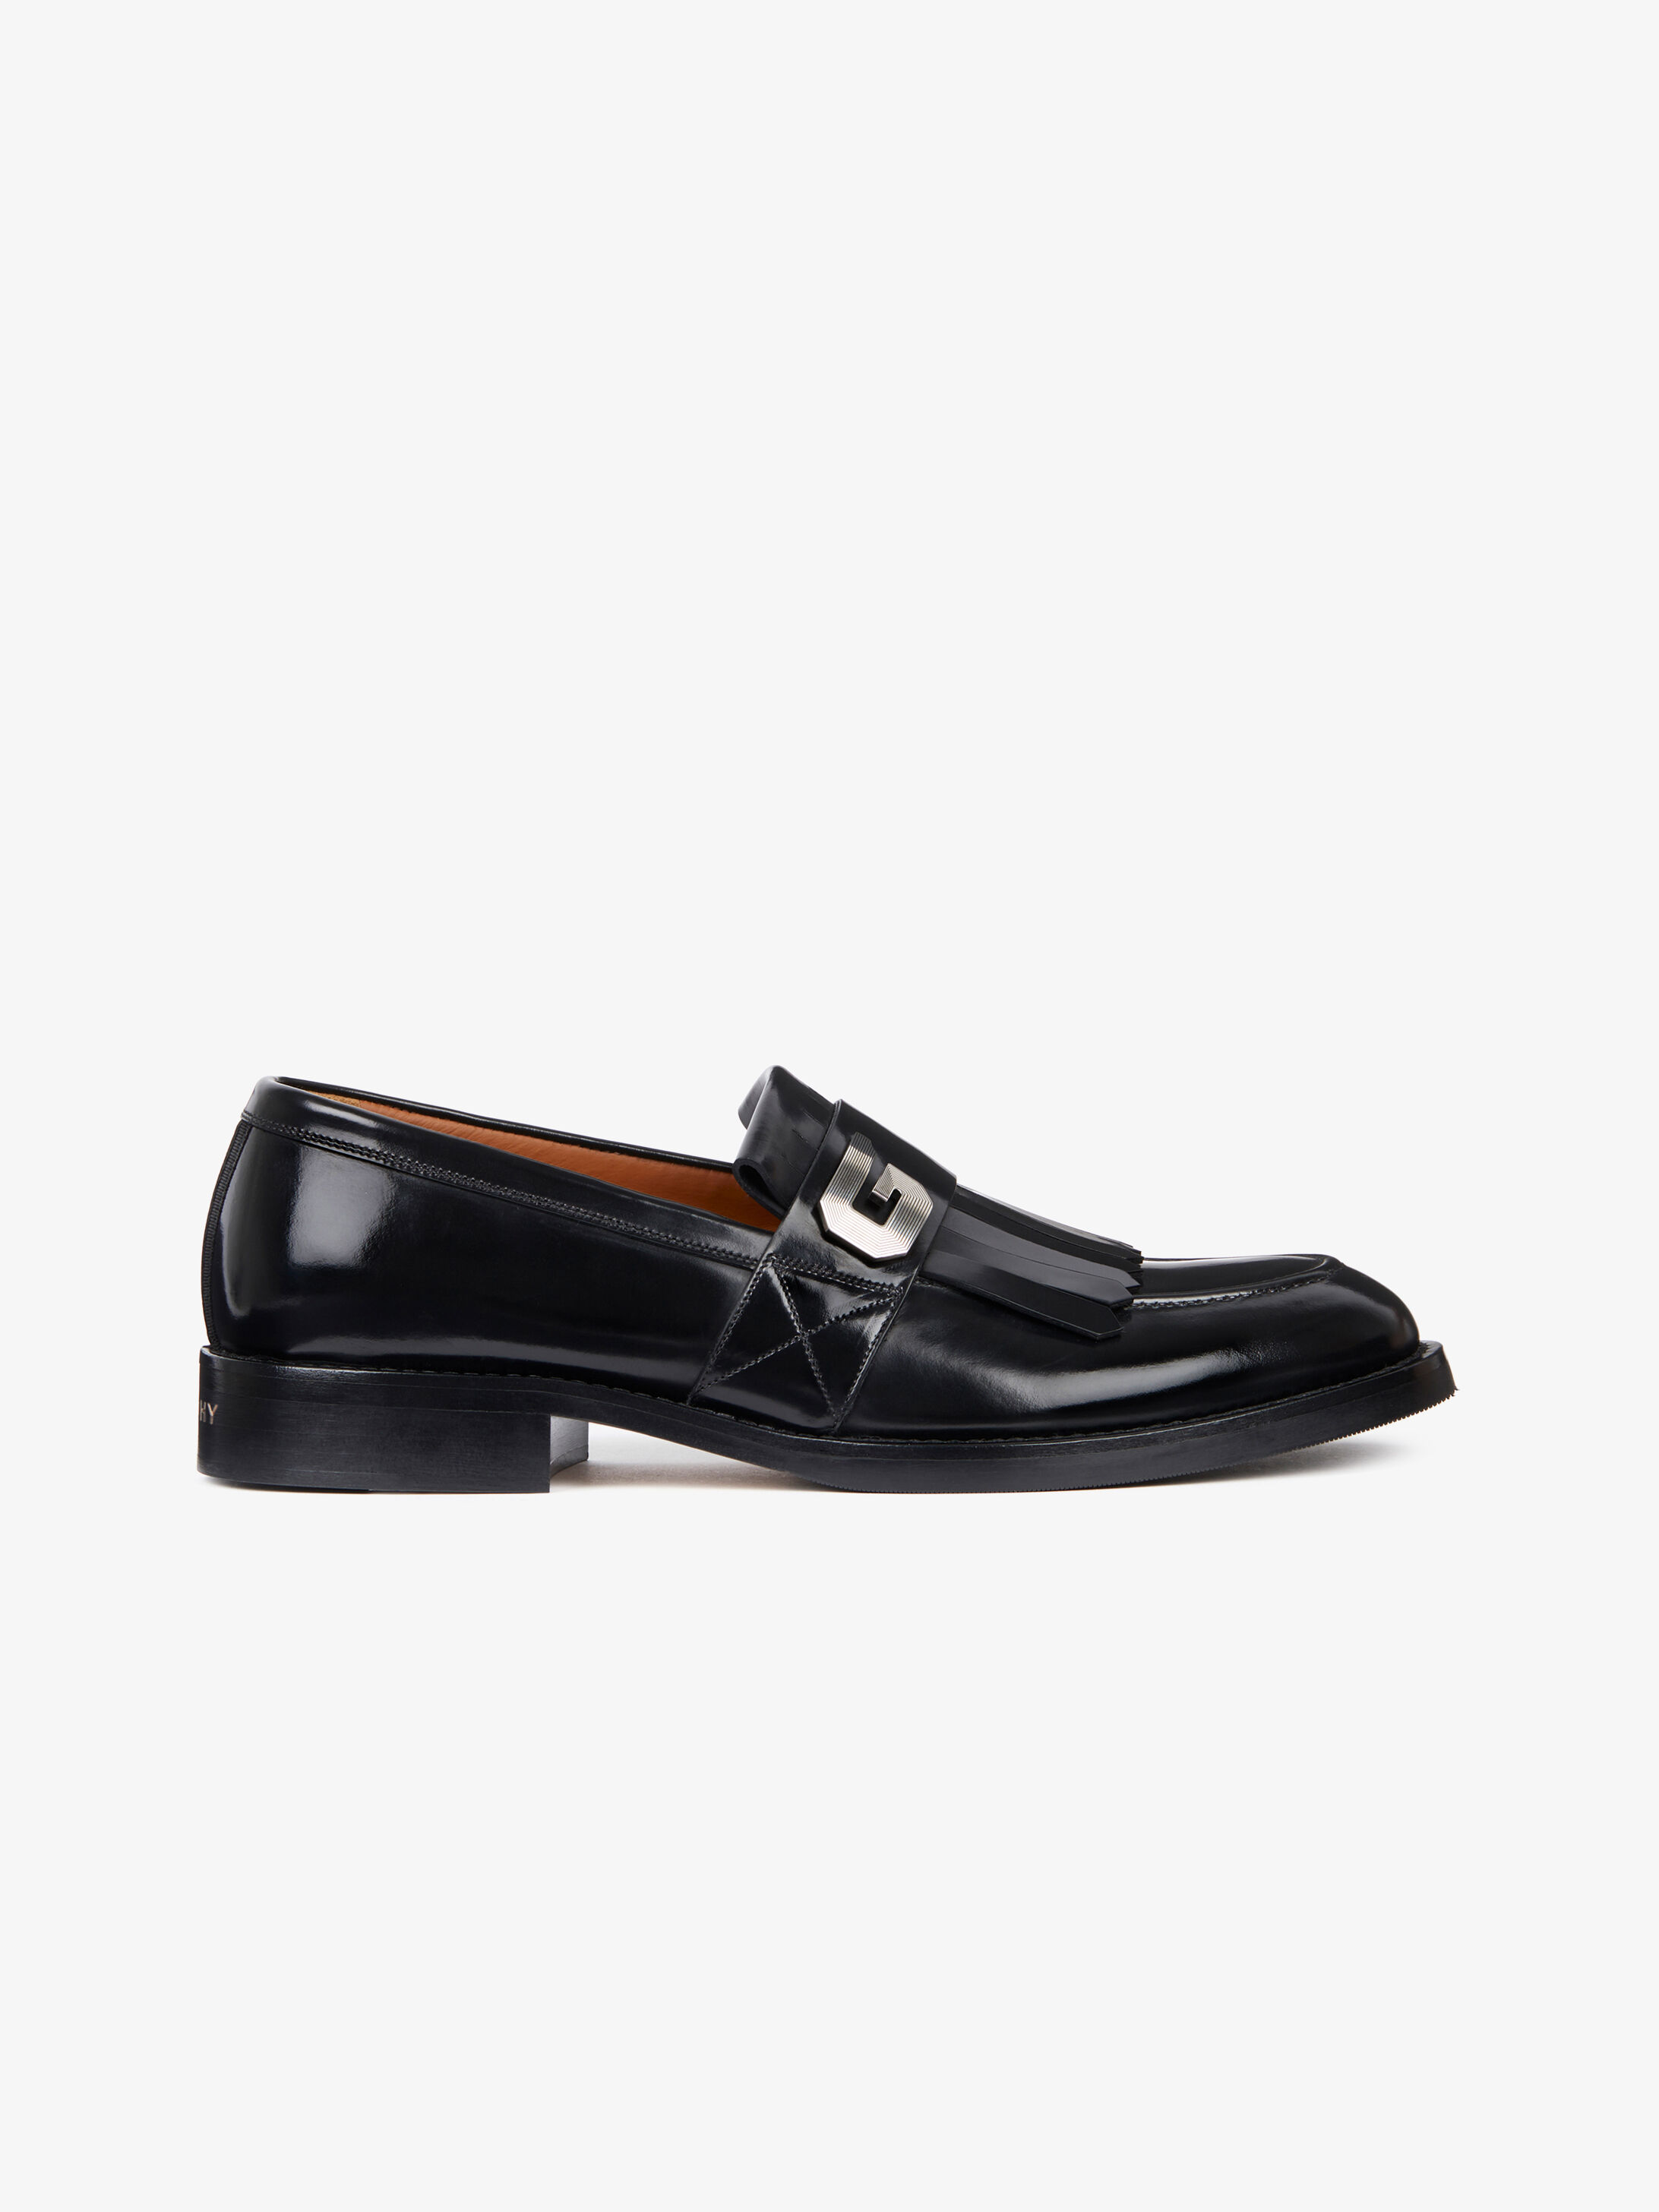 c5d60d5fb62 Men s Boots and Derbies collection by Givenchy.